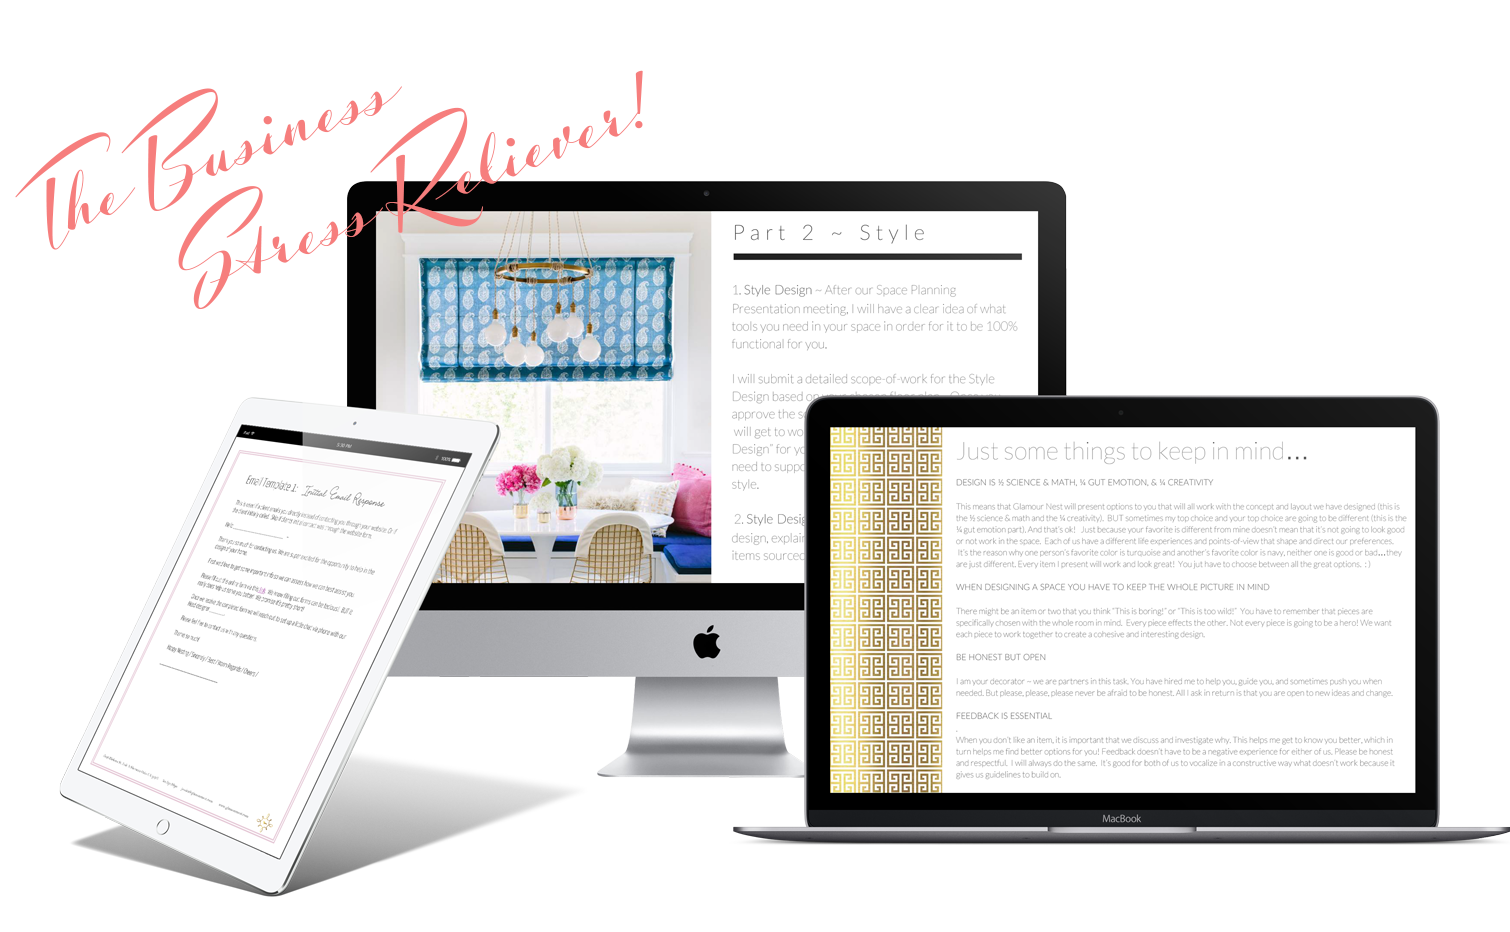 Interior design business systems templates | Ms. Glamour Nest Interior Design Business Coaching